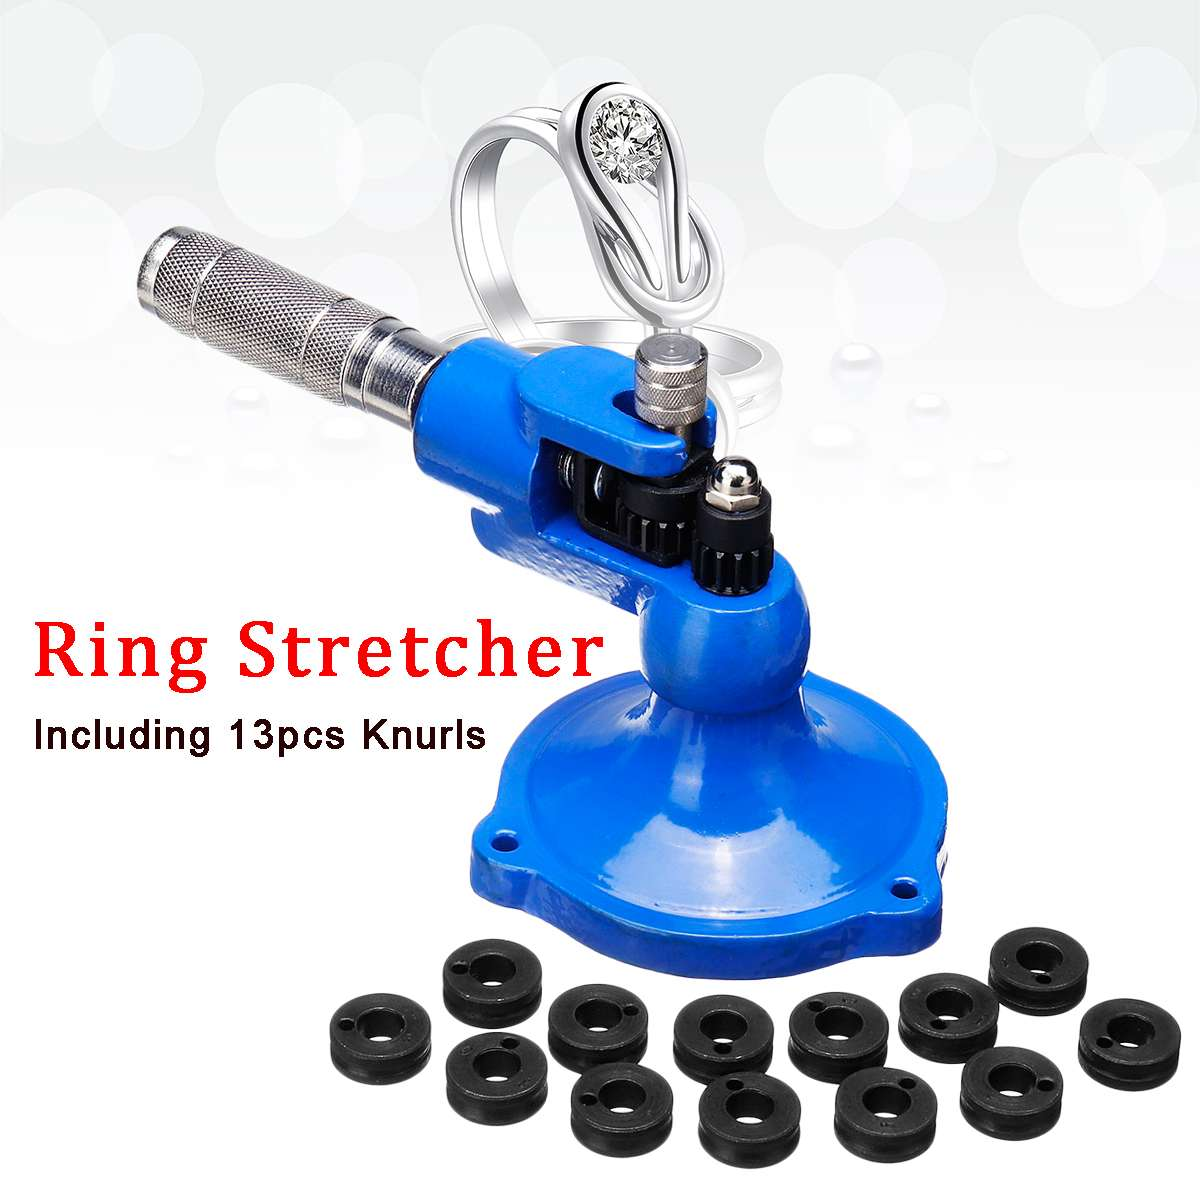 Ring Stretcher Expander Sizing Machine Roller For Stone Set Jewelry Making Tool Soild Steel Material with 13 Different KnurlsRing Stretcher Expander Sizing Machine Roller For Stone Set Jewelry Making Tool Soild Steel Material with 13 Different Knurls